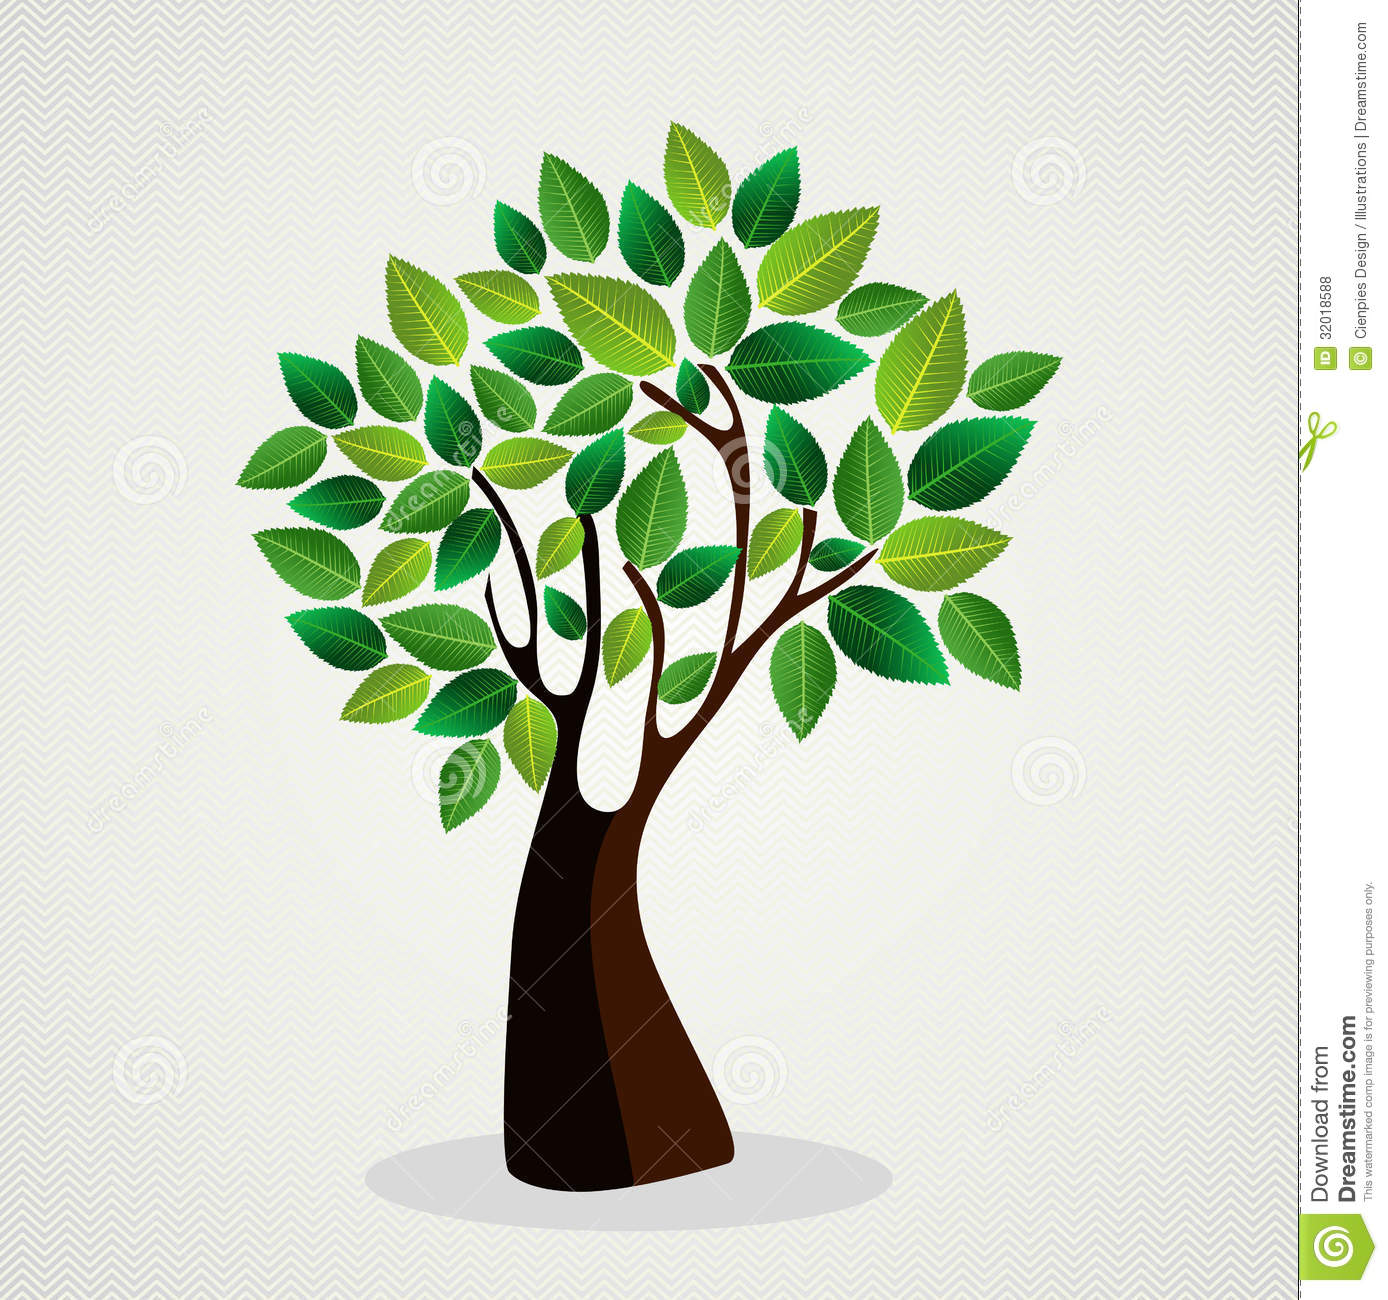 Cute Concept Tree Design Stock Vector. Image Of Leaf